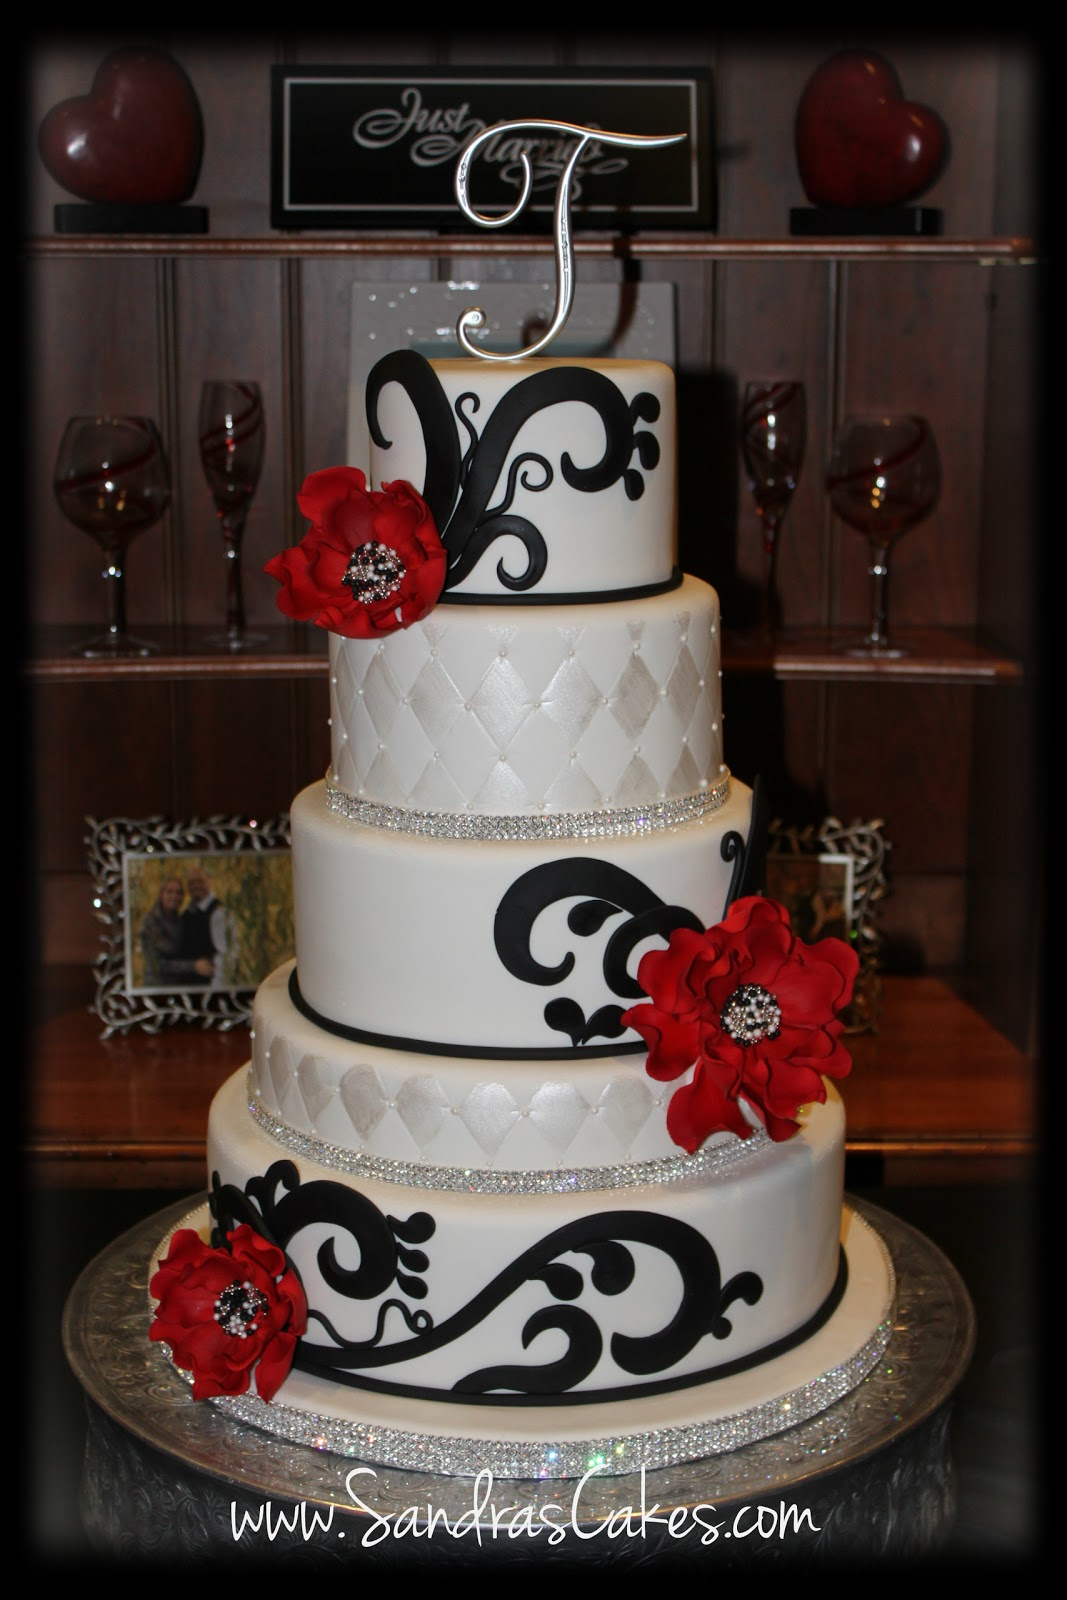 Here Is A Truly Beautiful Cake We Made A Couple Of Weeks Ago! I Was Very  Pleased With It And So Was The Bride! Wedding At The Moorings Club In Vero  Beach.